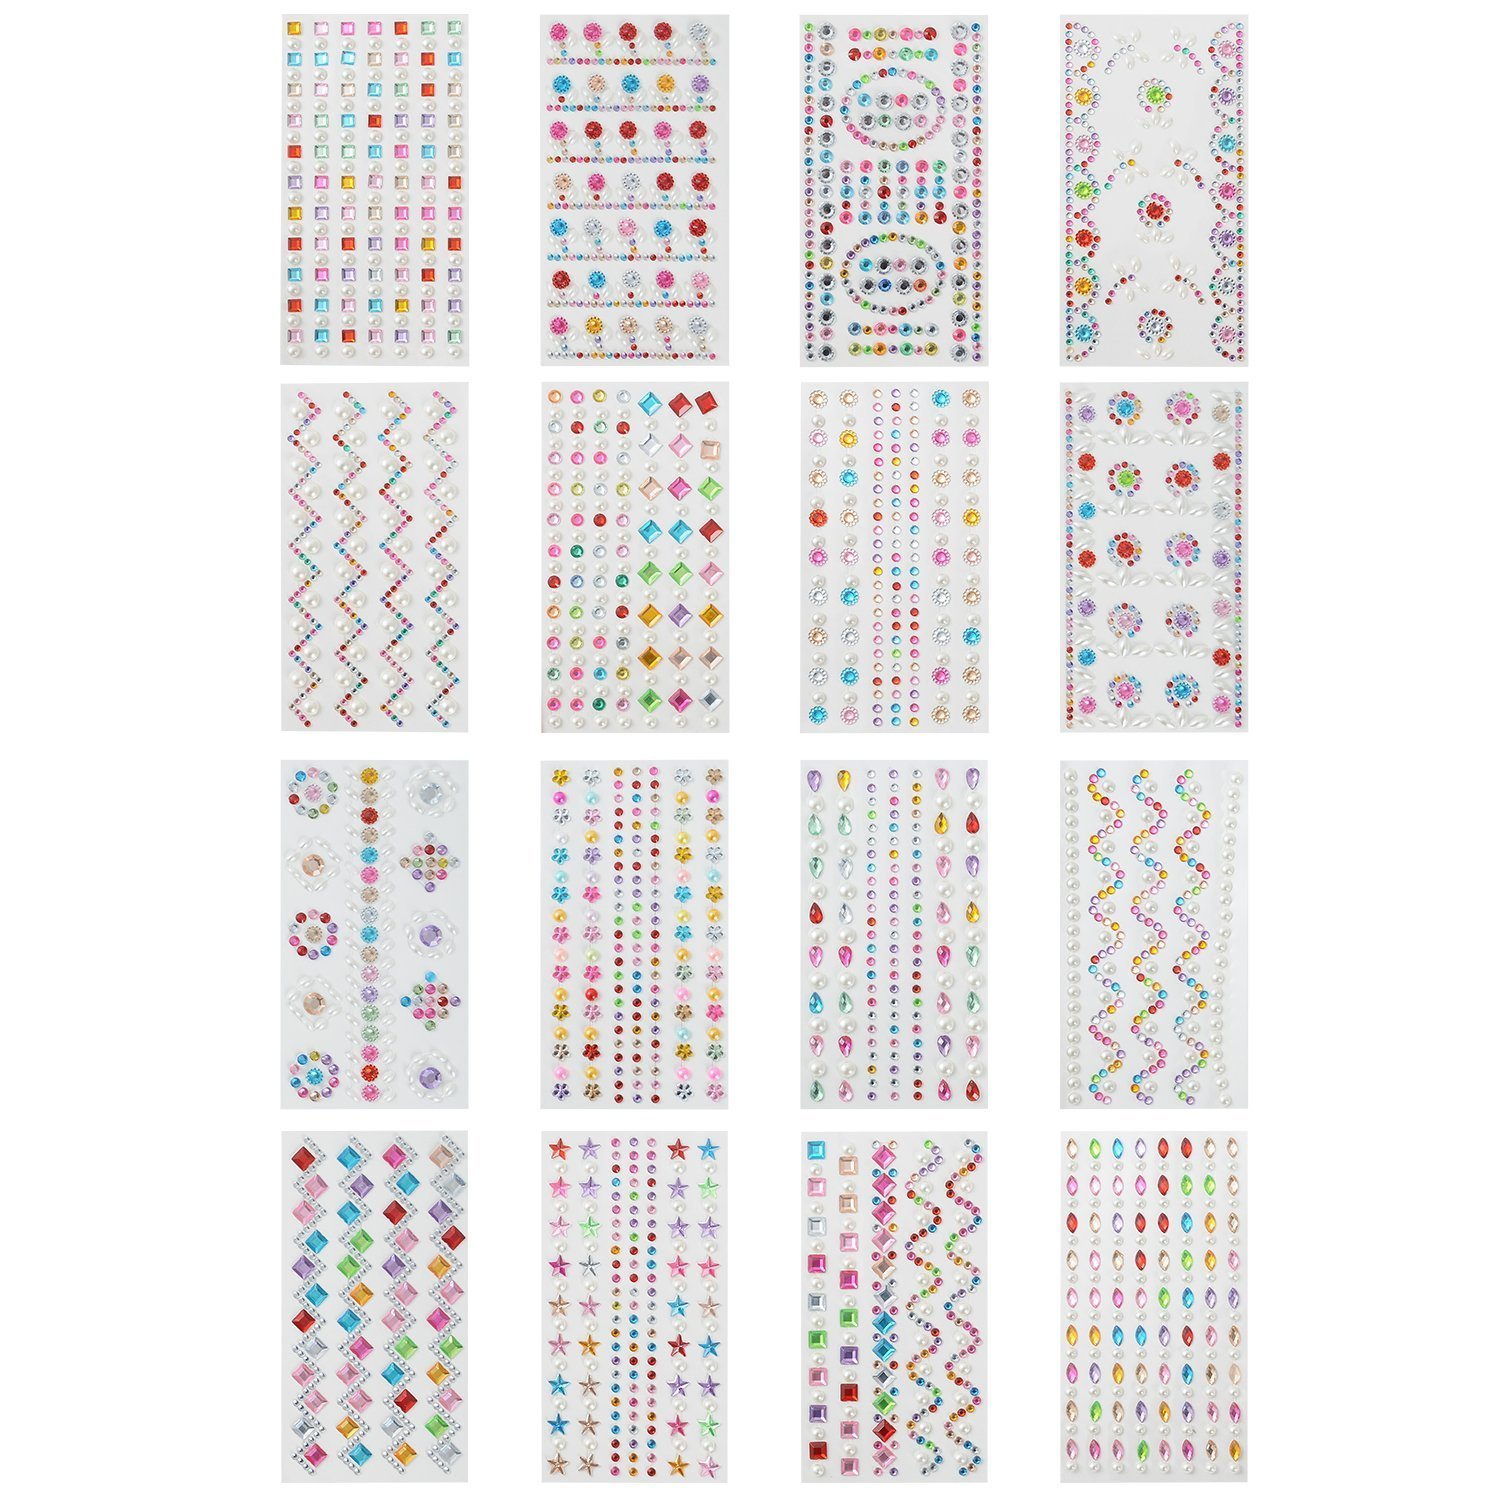 YUEAON 16 Pack Different Designs Colorful Rhinestone Stickers Self Adhesive Bling Craft Jewel gem Diamond Sticker Embellishments Assorted Size-16 Patterns